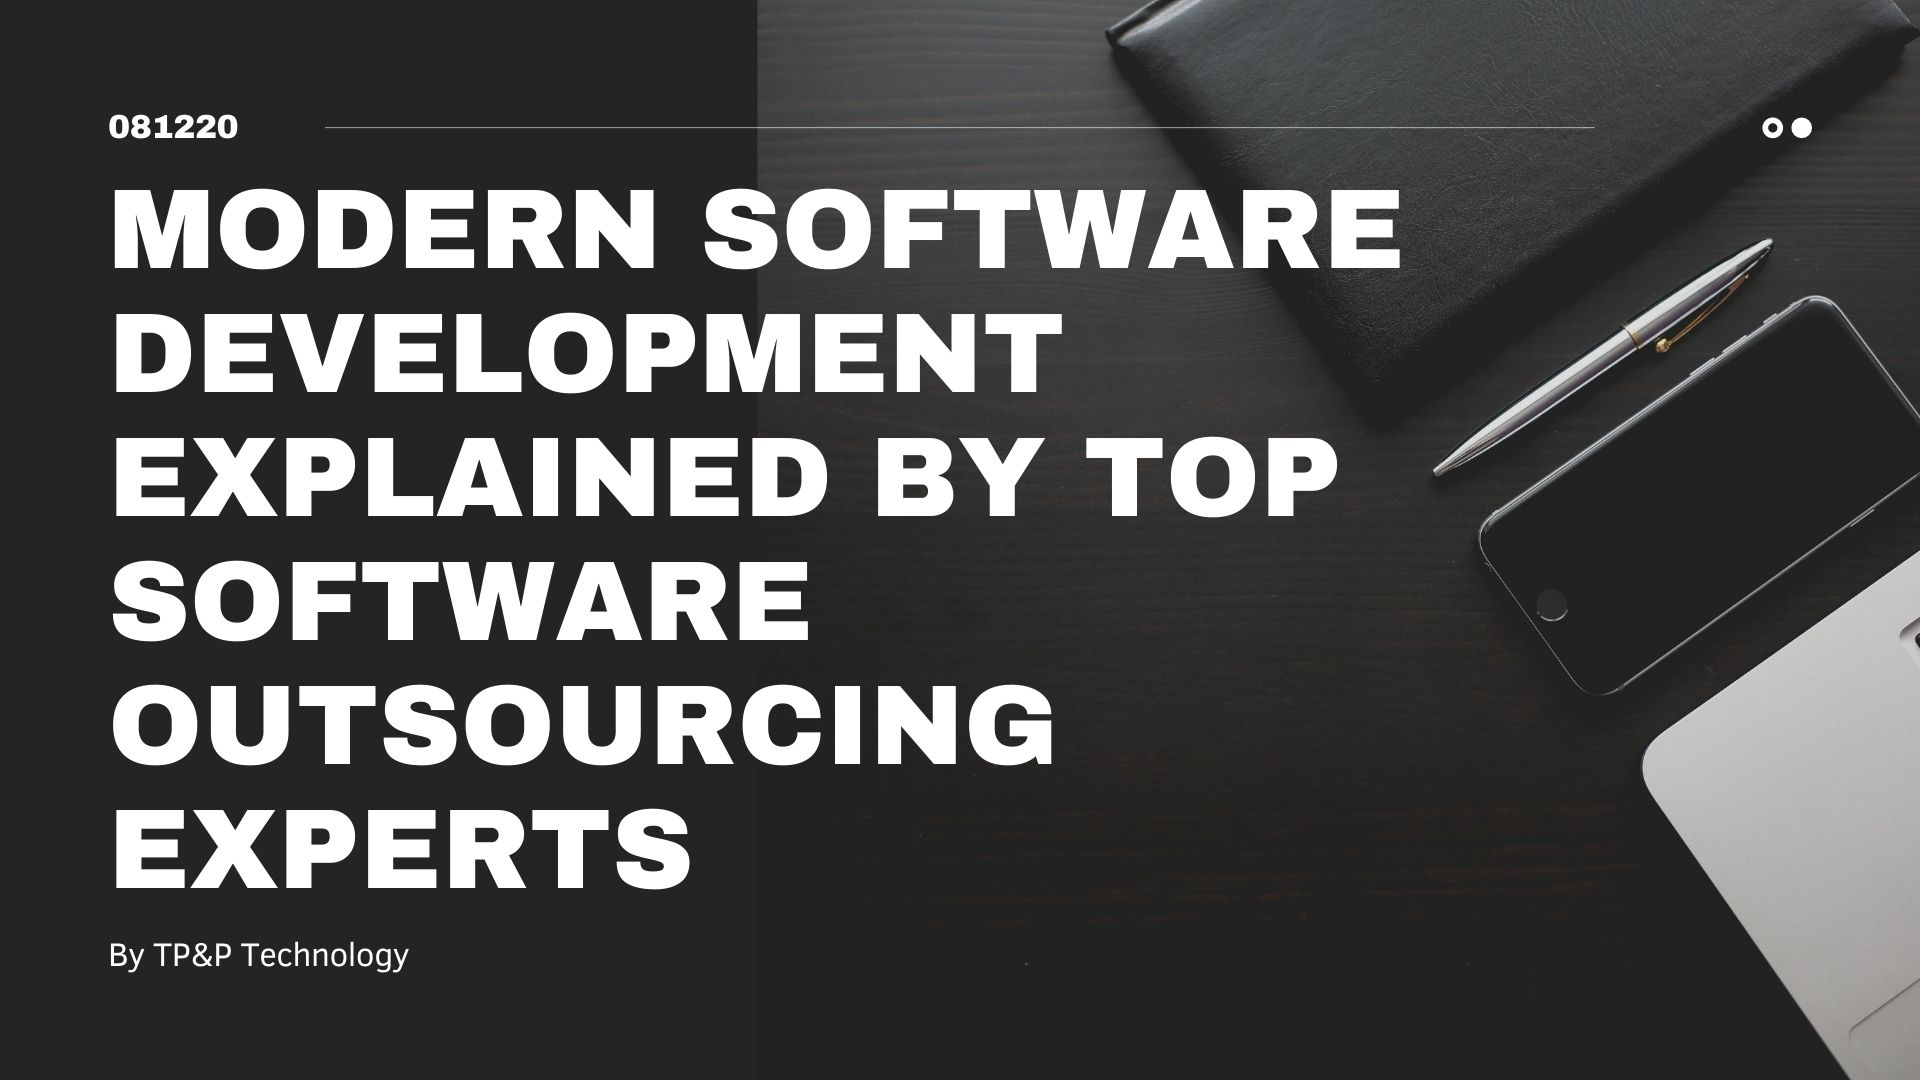 Modern Software Development Explained By Top Software Outsourcing Experts